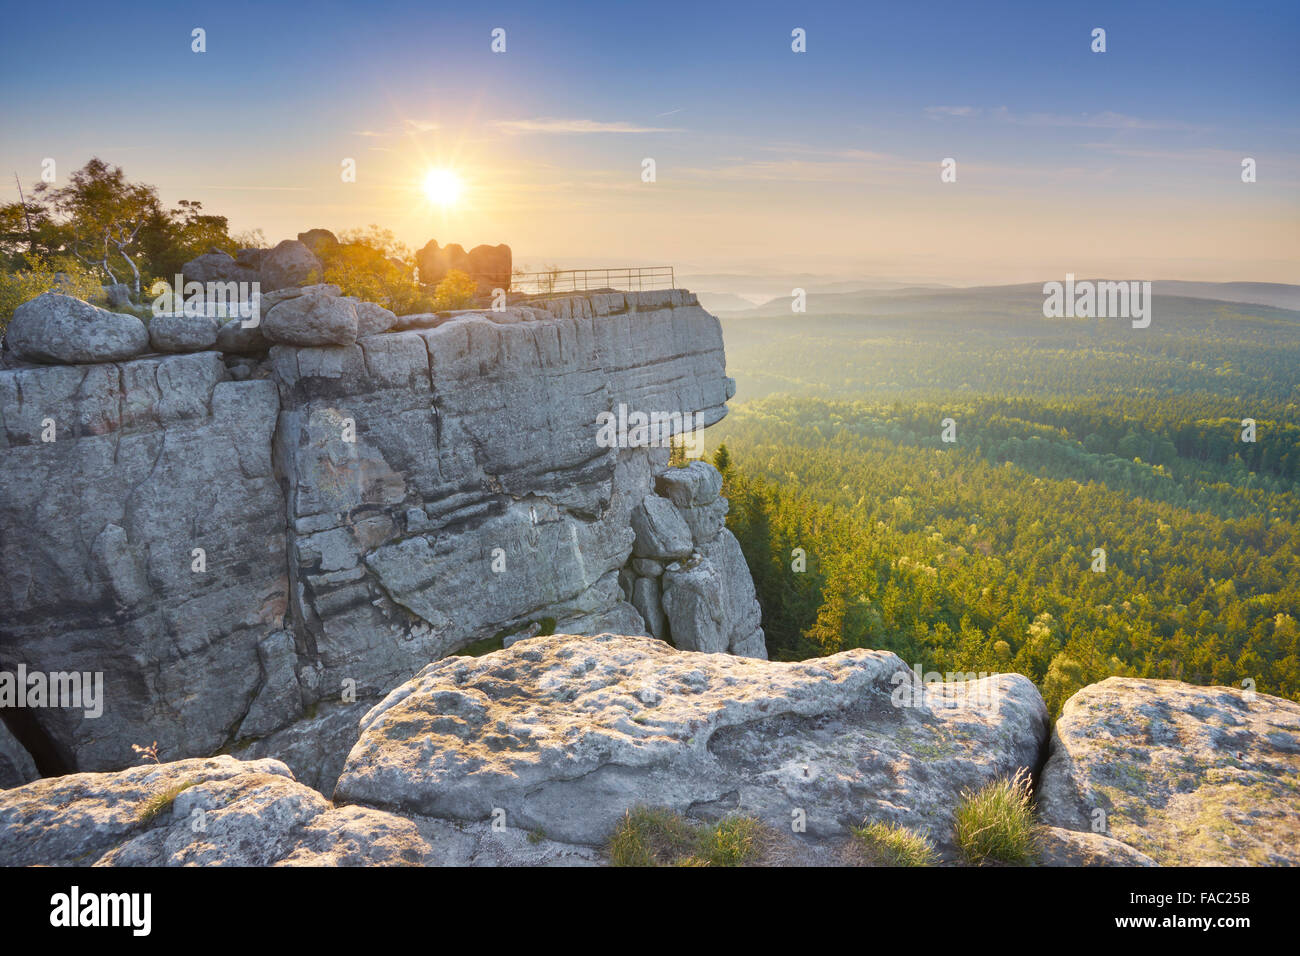 Szczeliniec Wielki National Park at sunset - Table Mountains, Poland - Stock Image